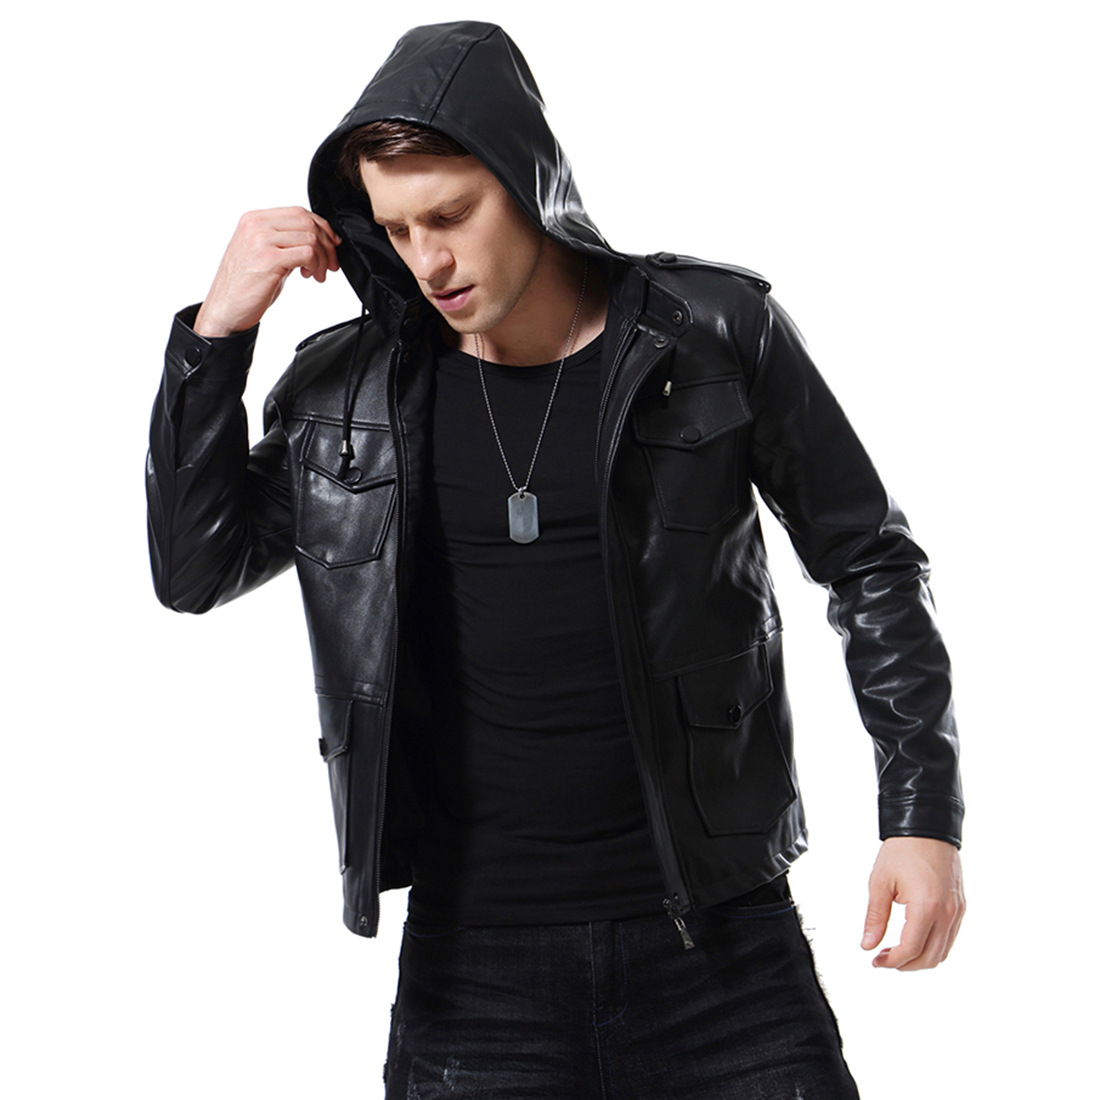 2019 Autumn New High end Men 39 s Motorcycle Hooded Men 39 s Leather Jacket Leather European And American Jacket B005 in Faux Leather Coats from Men 39 s Clothing